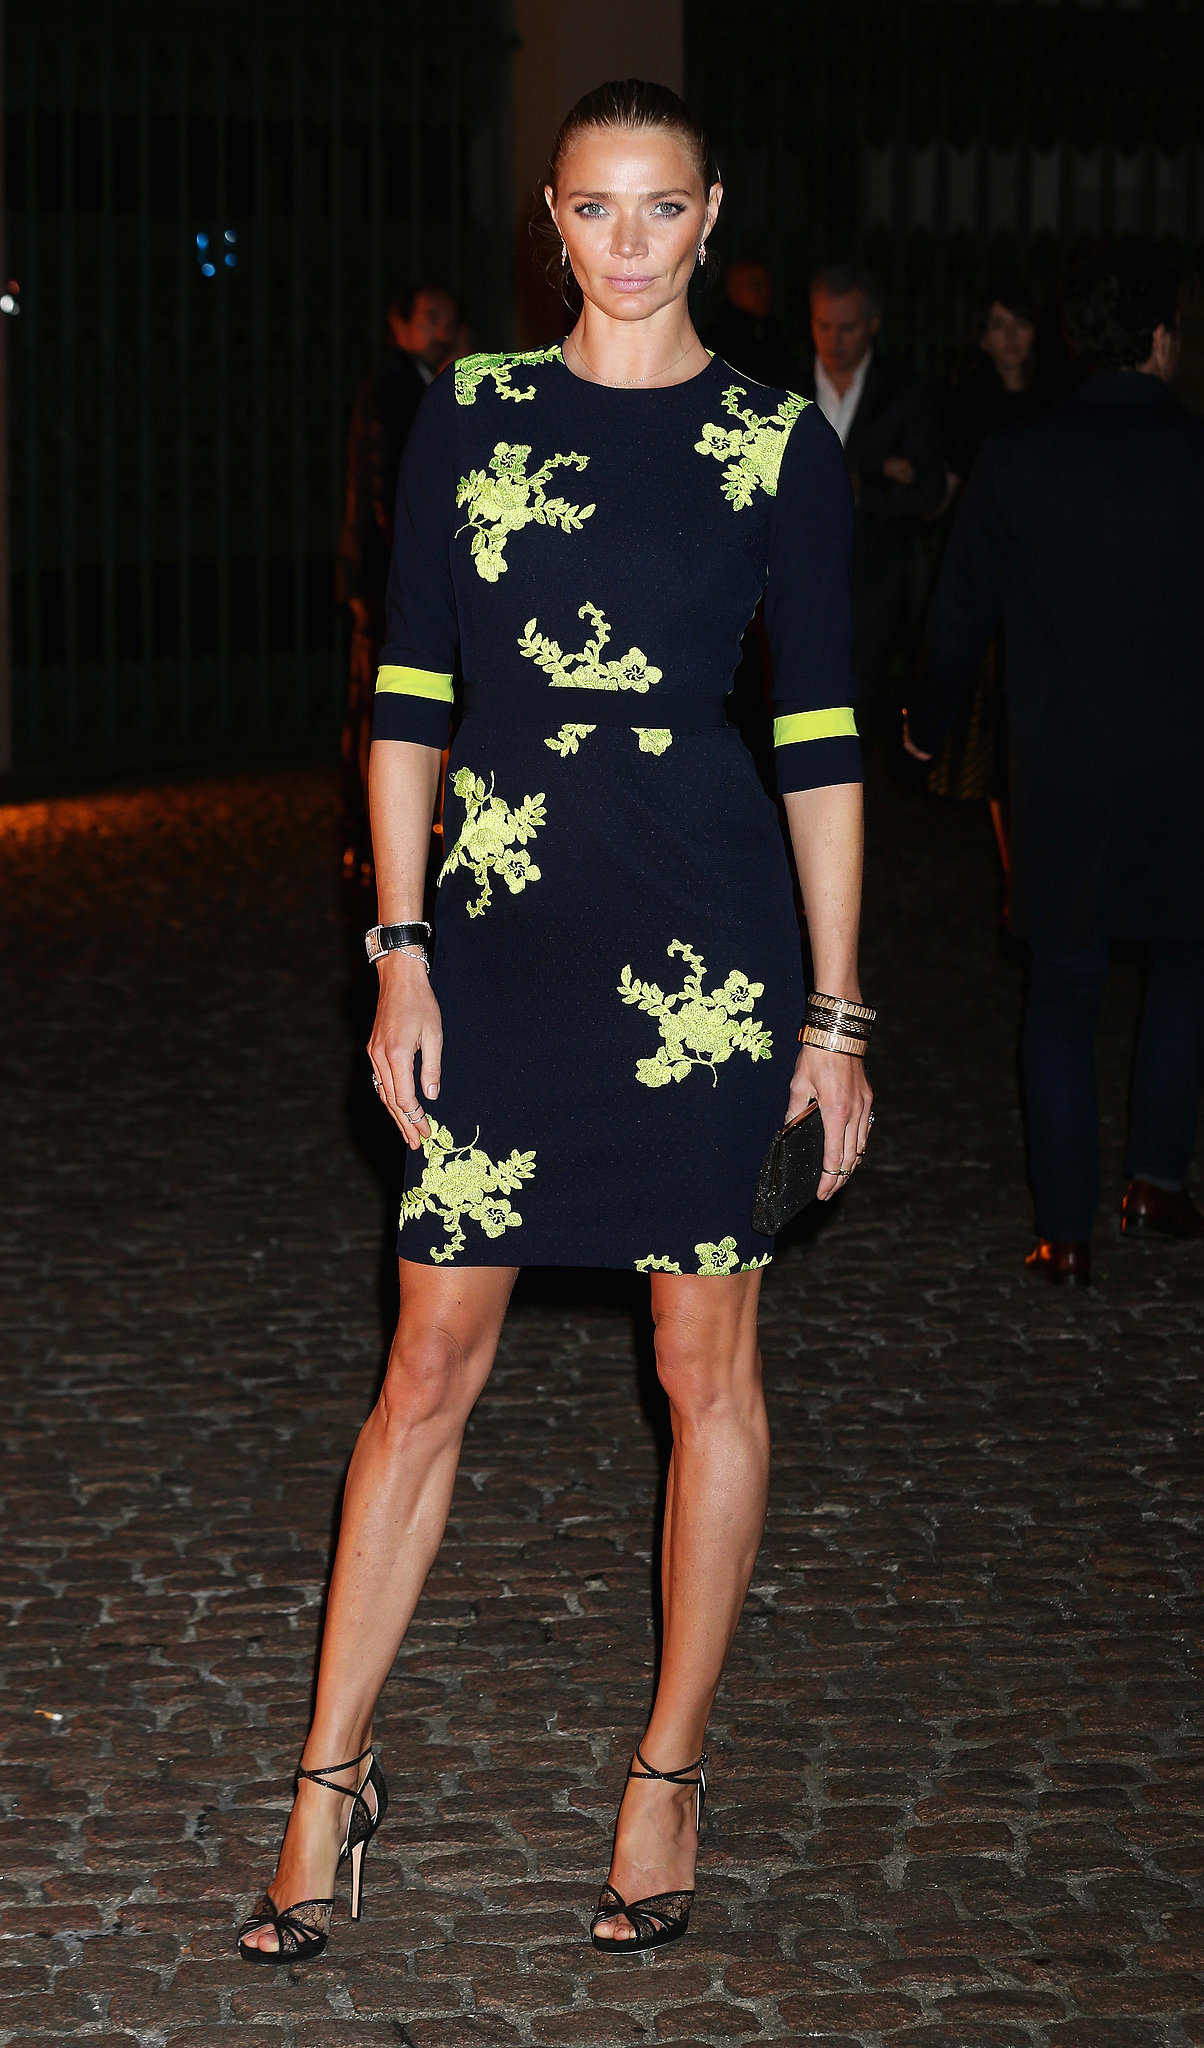 Jodie Kidd gave neon a sophisticated spin outside Lodon's Apsley House.